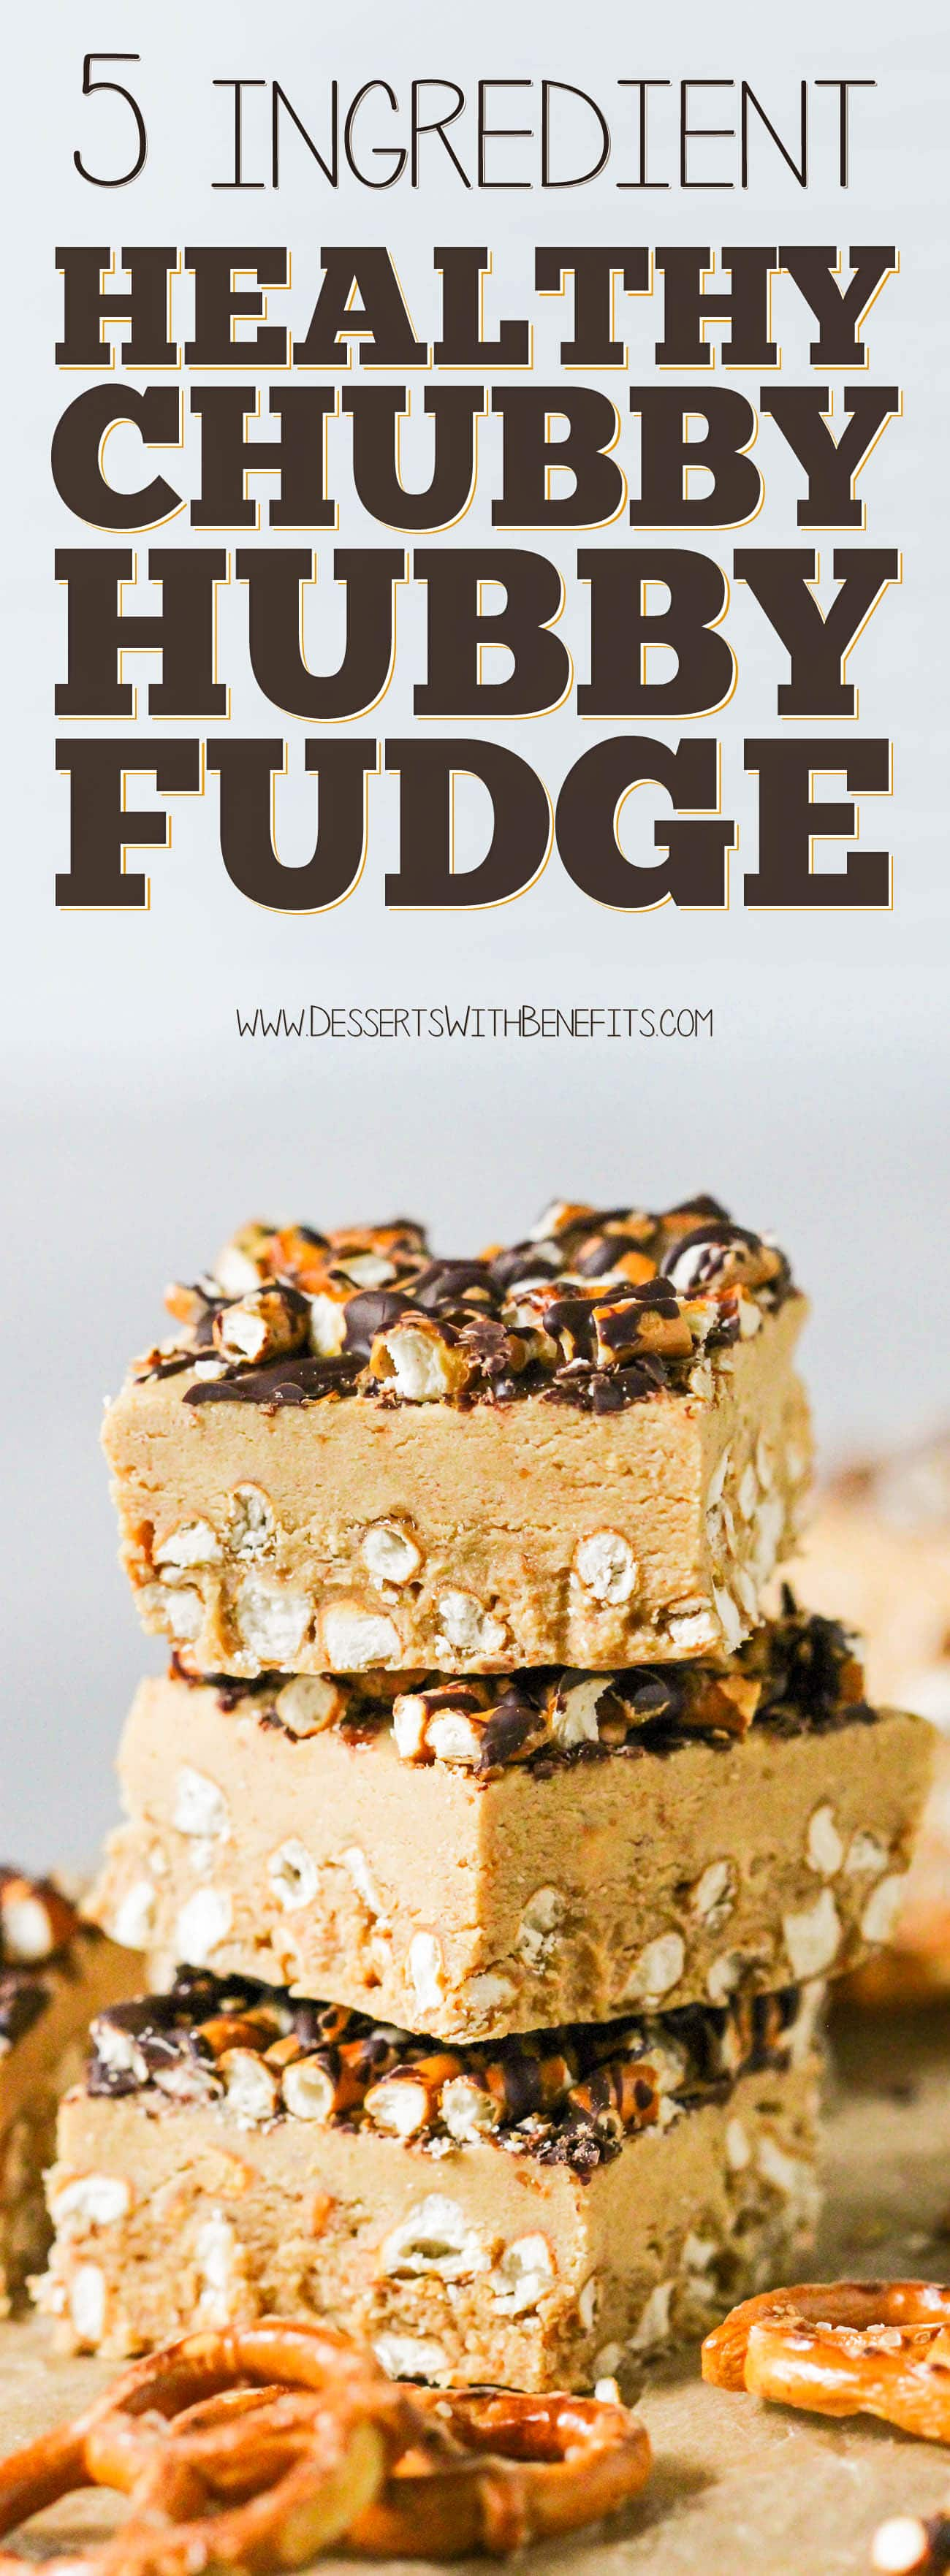 Healthy Chubby Hubby Fudge (Chocolate Peanut Butter Pretzel Fudge) -- refined sugar free, high protein, and gluten free optional.